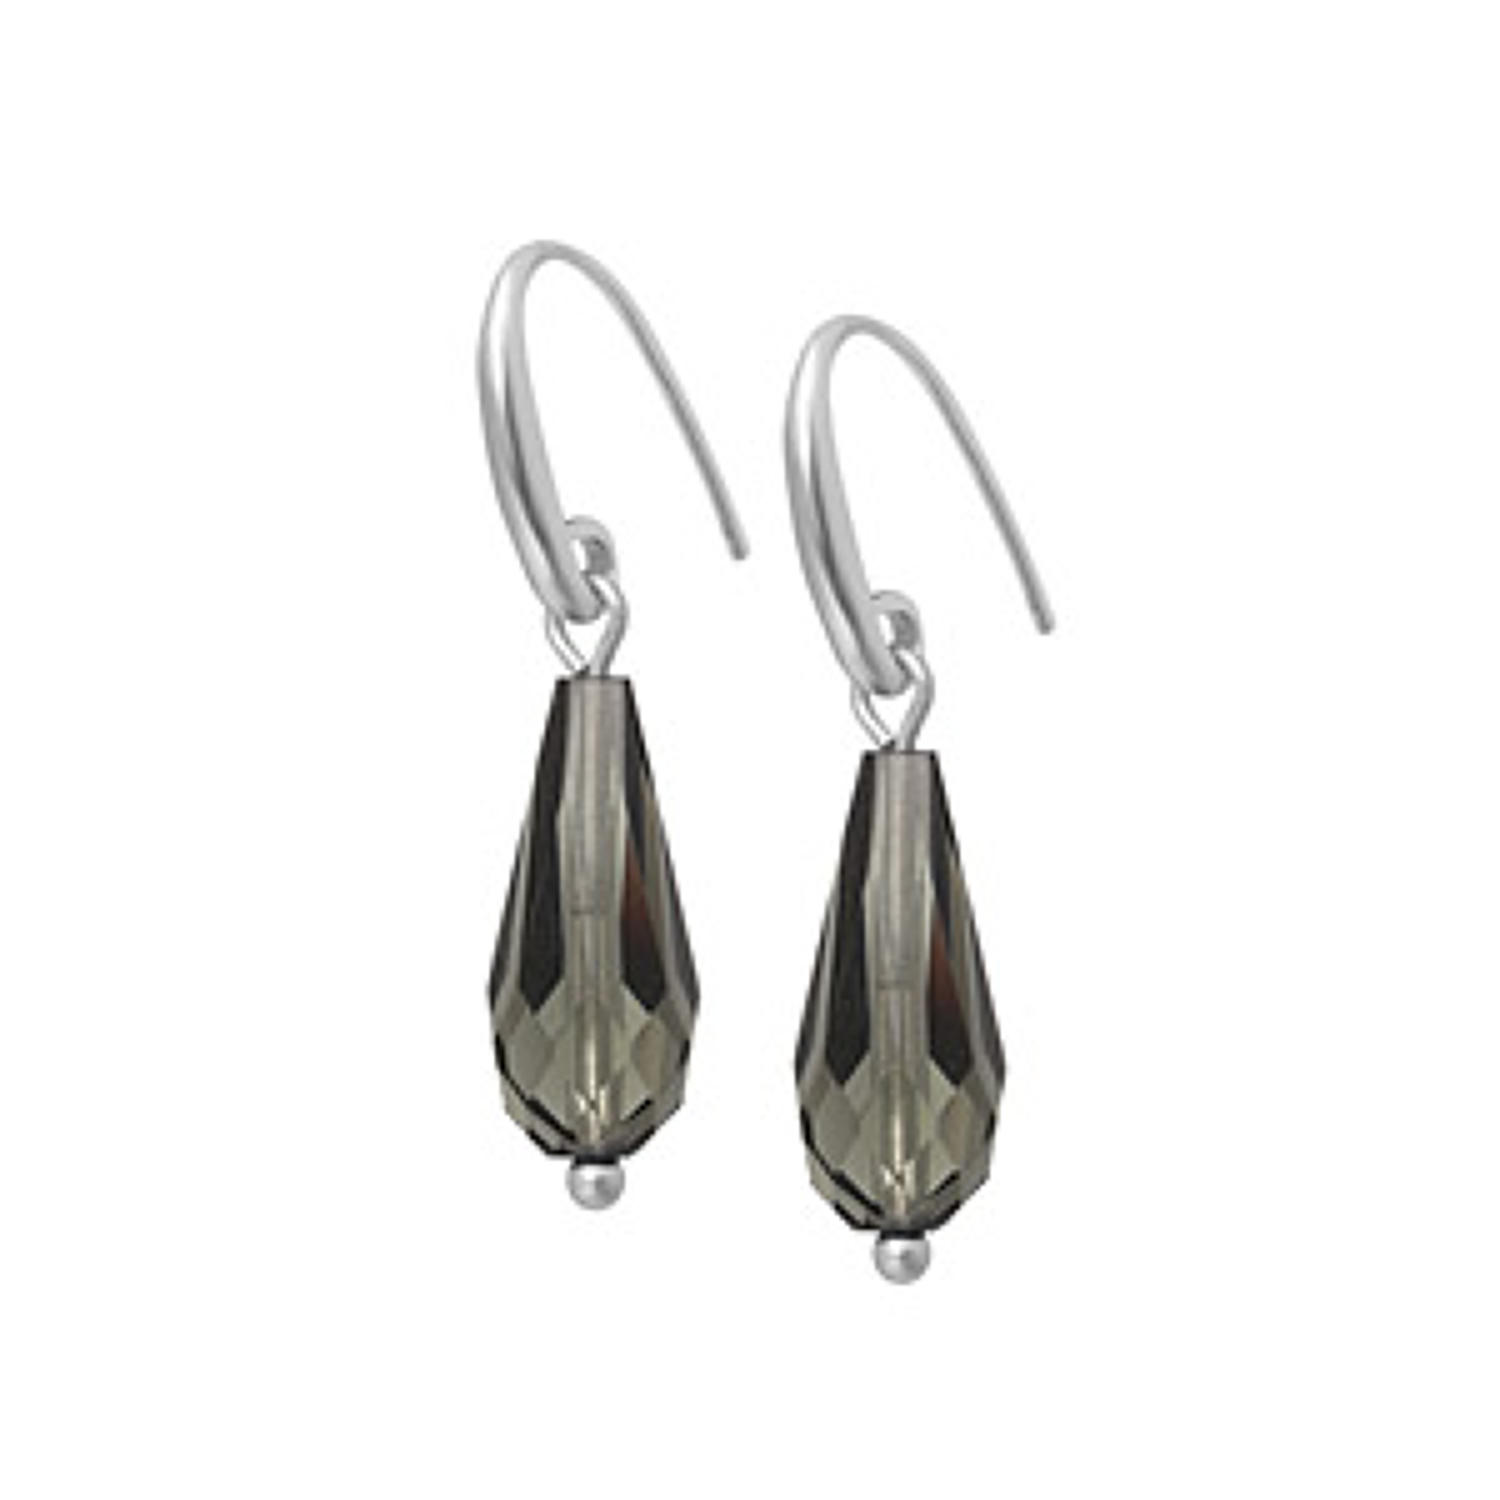 Sence - Laughter earrings matt silver